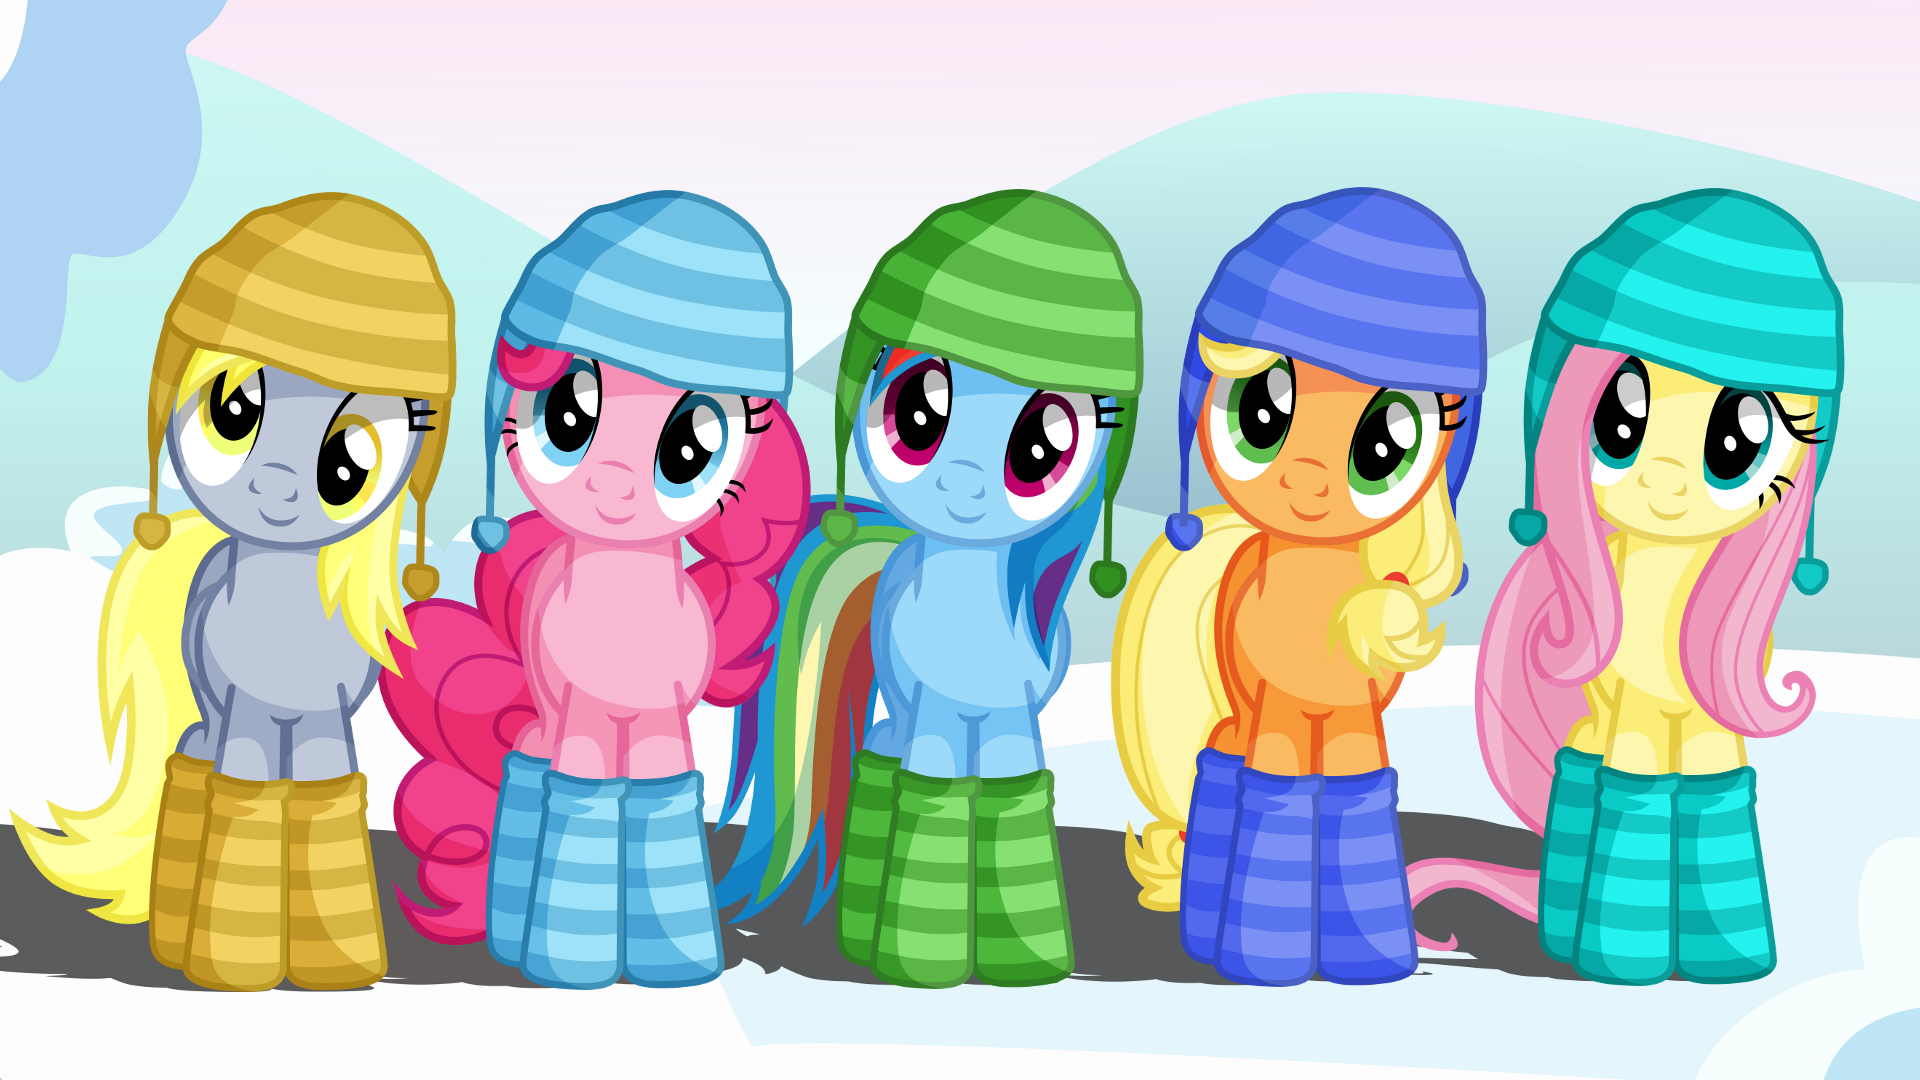 Cold Day Cozy by Austiniousi, SilverVectors and the-moep